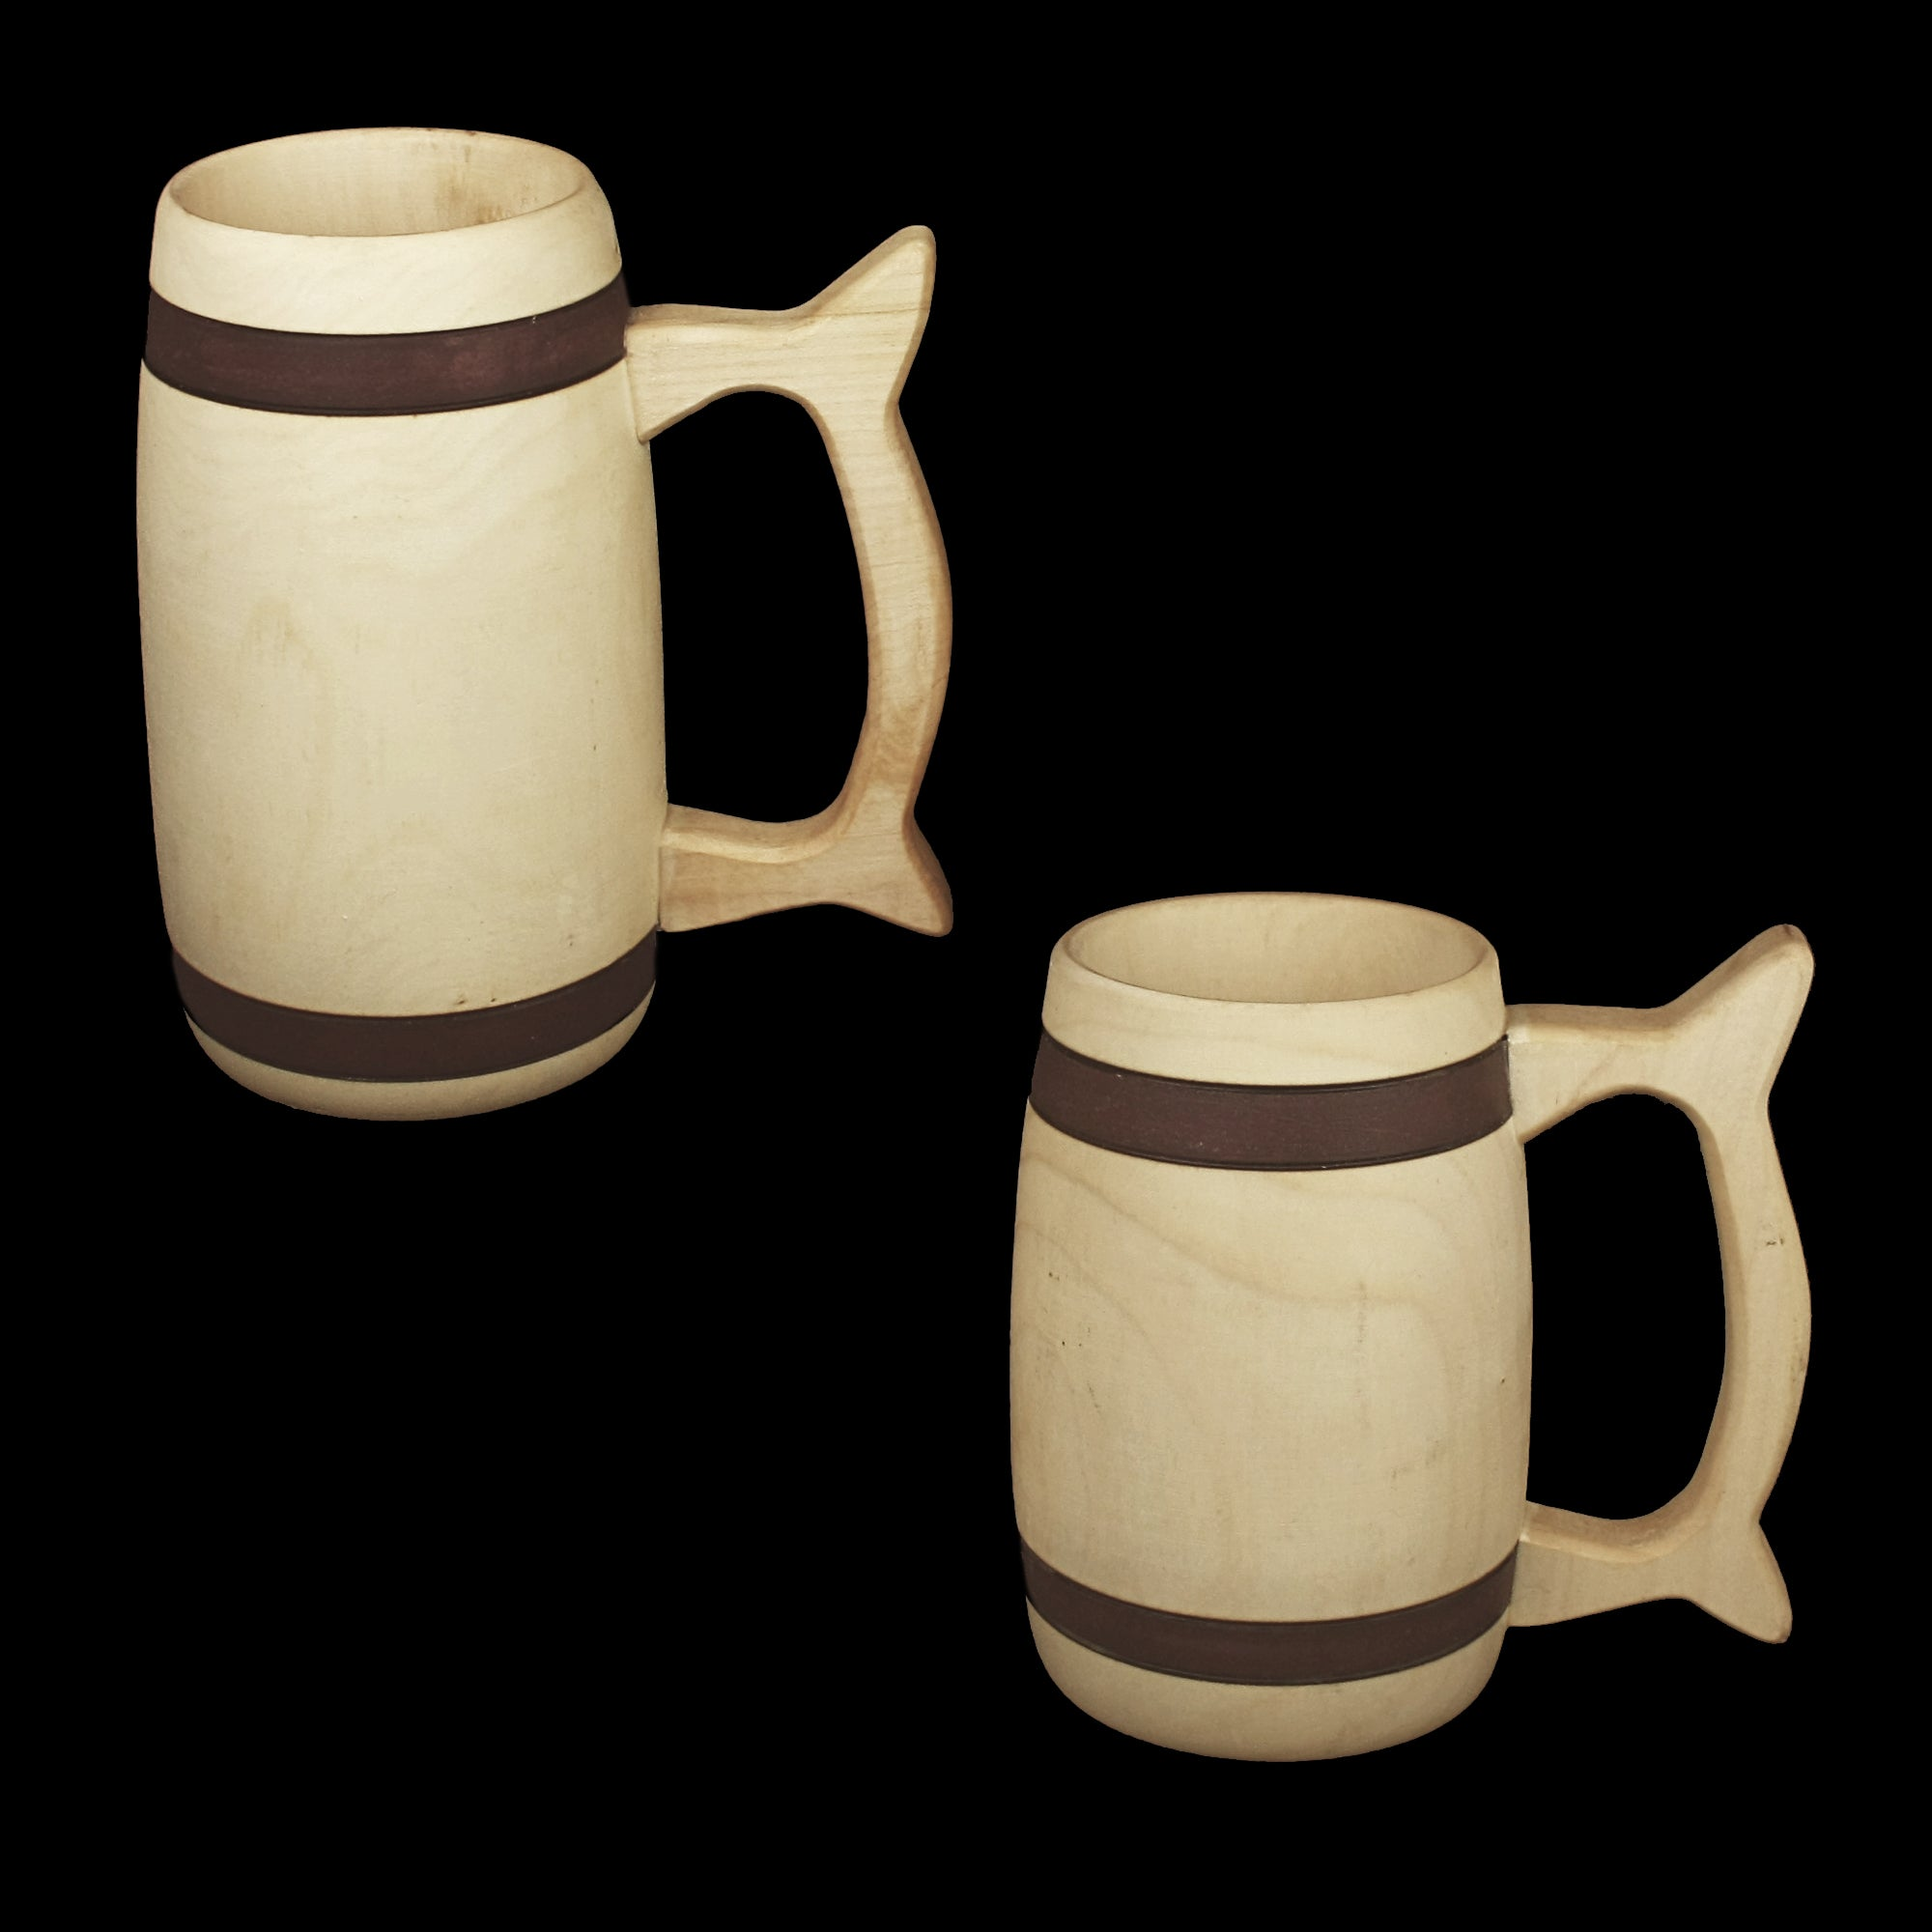 Birch Wood Beer Tankards - Viking Feasting Supplies